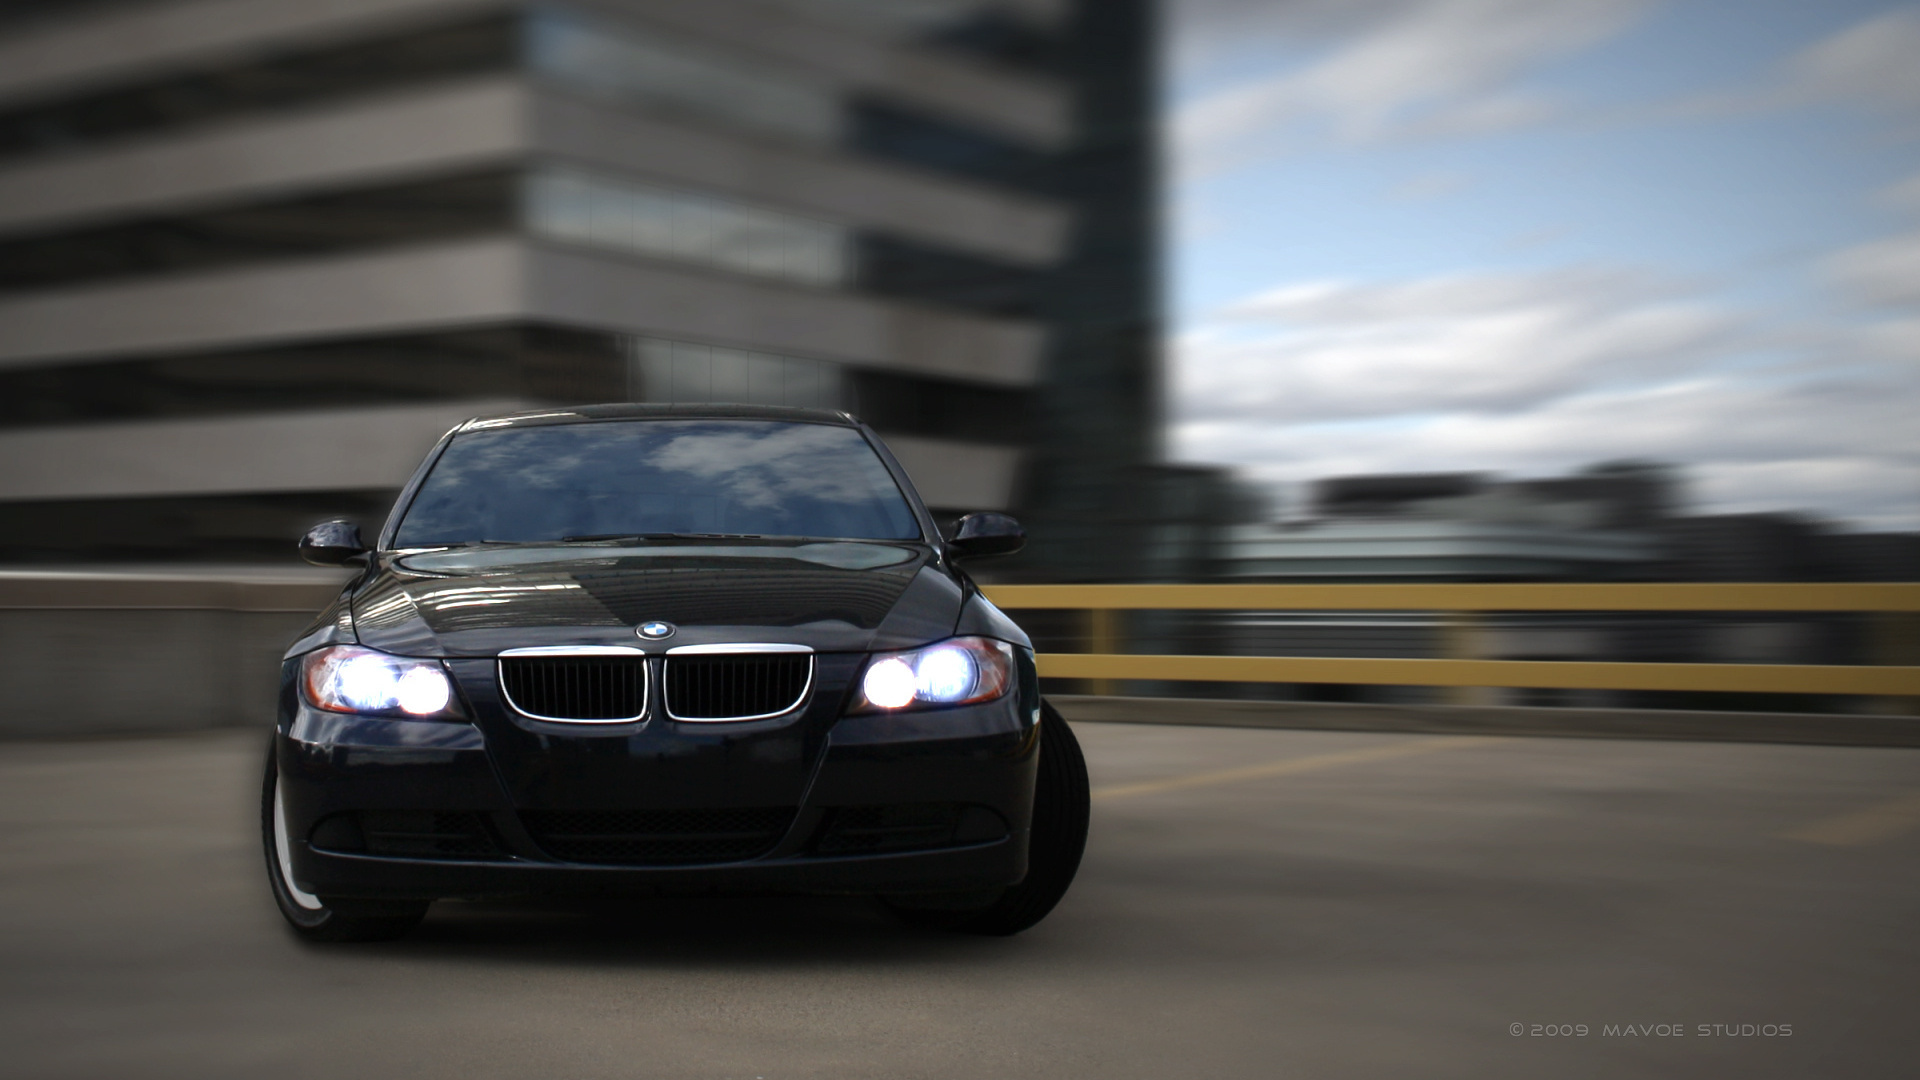 Best desktop wallpaper of BMW M3, image of black, drift | ImageBank.